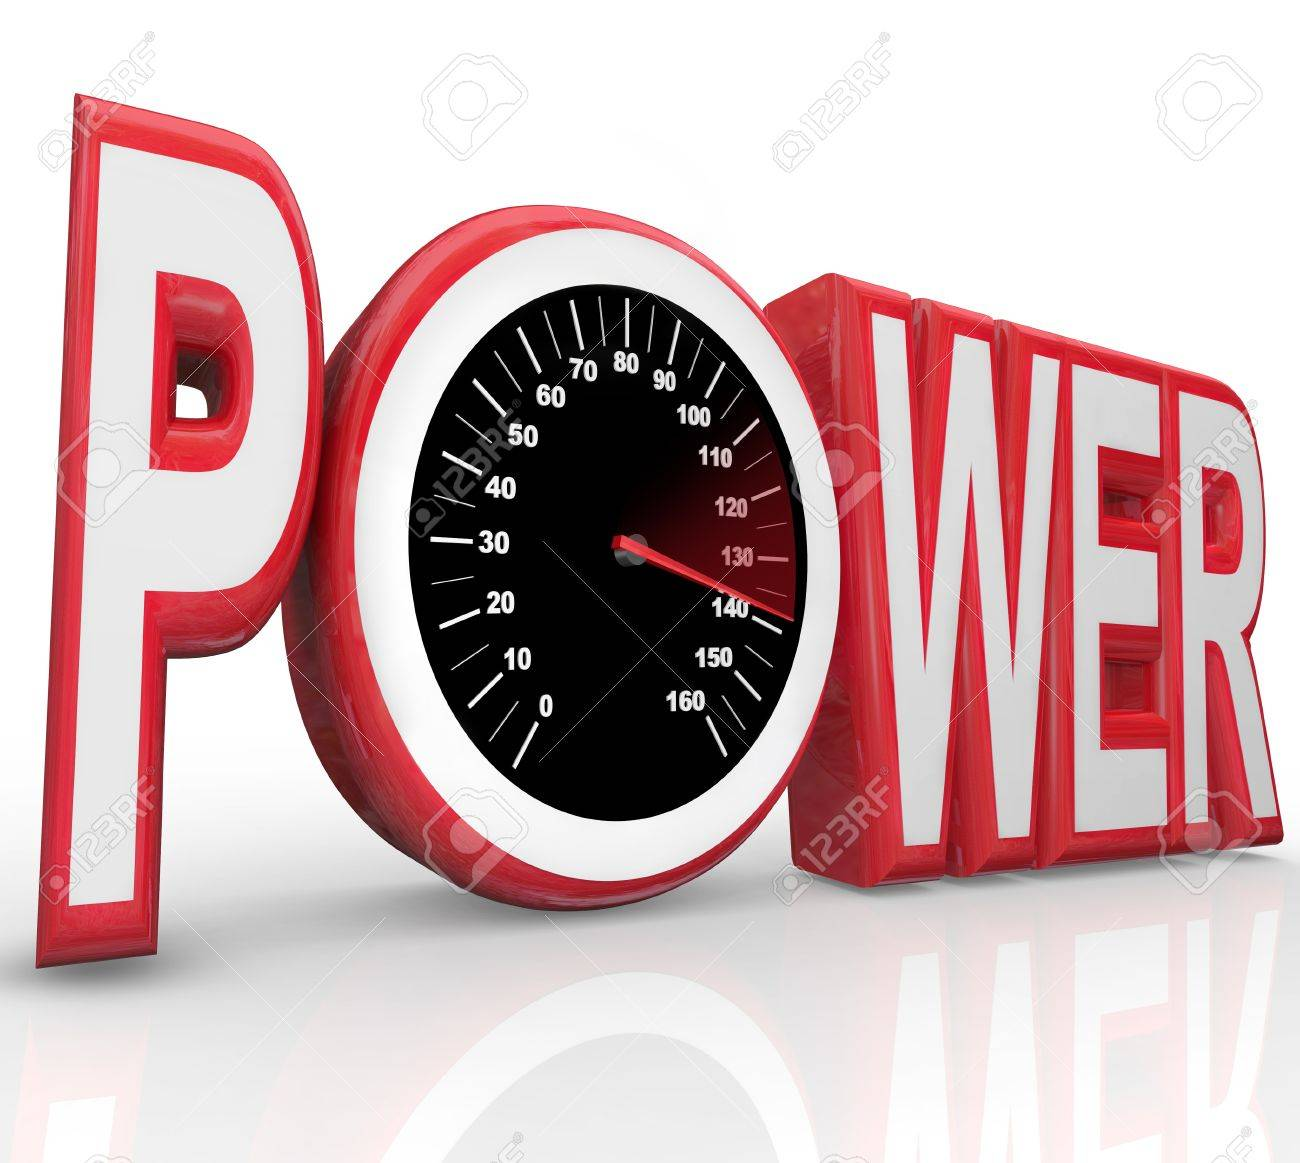 The Word Power With A Speedometer In The Letter O Representing ...